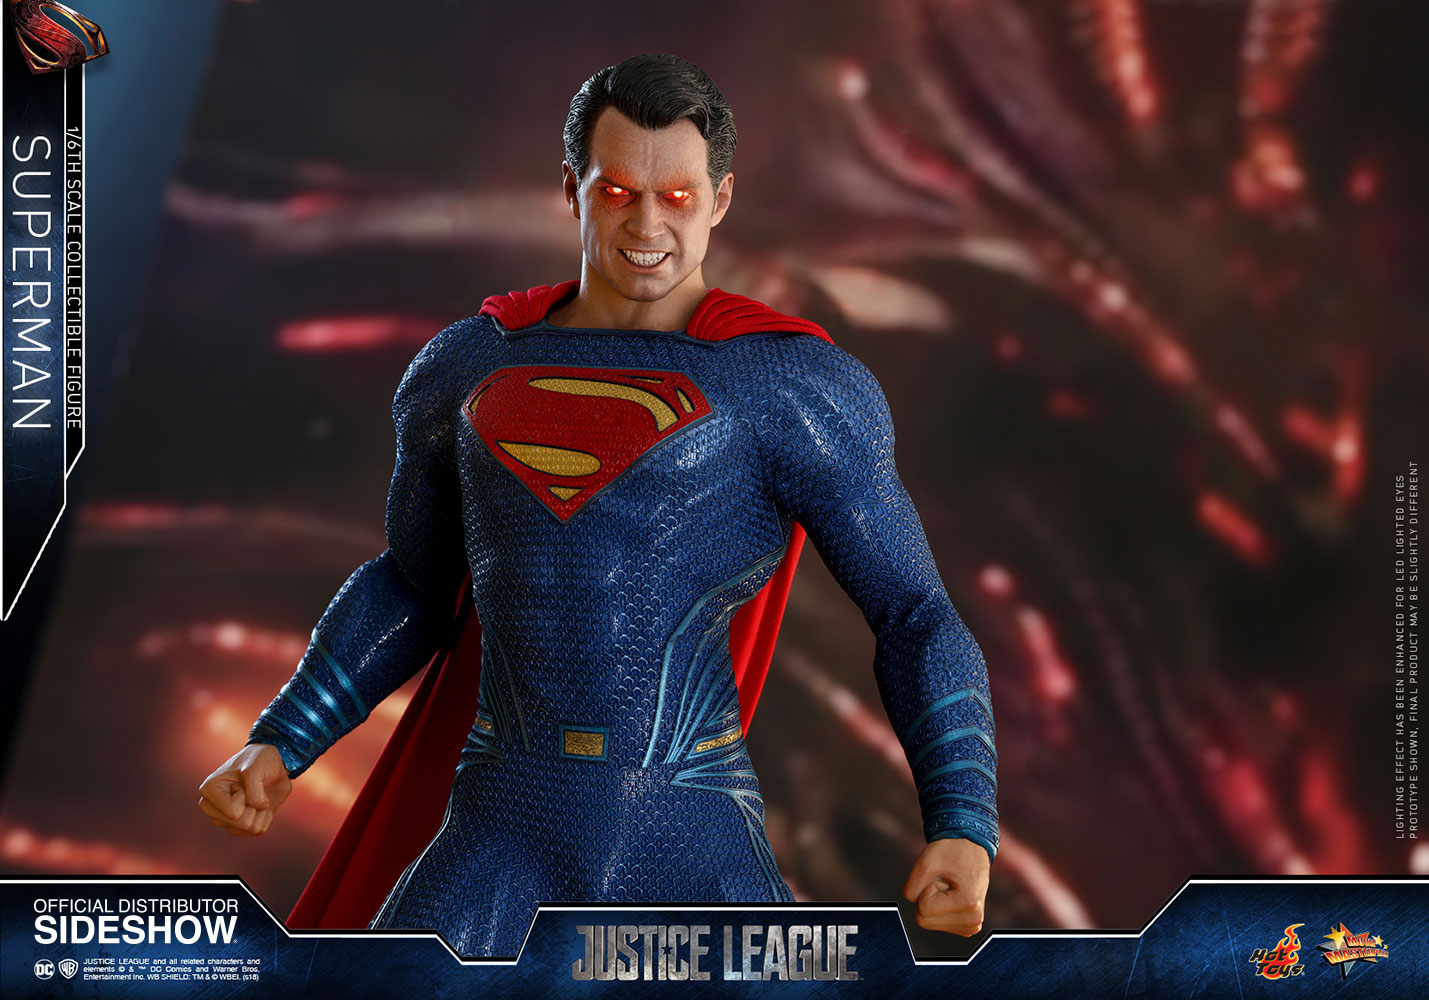 dc-comics-justice-league-superman-sixth-scale-figure-hot-toys-903116-19